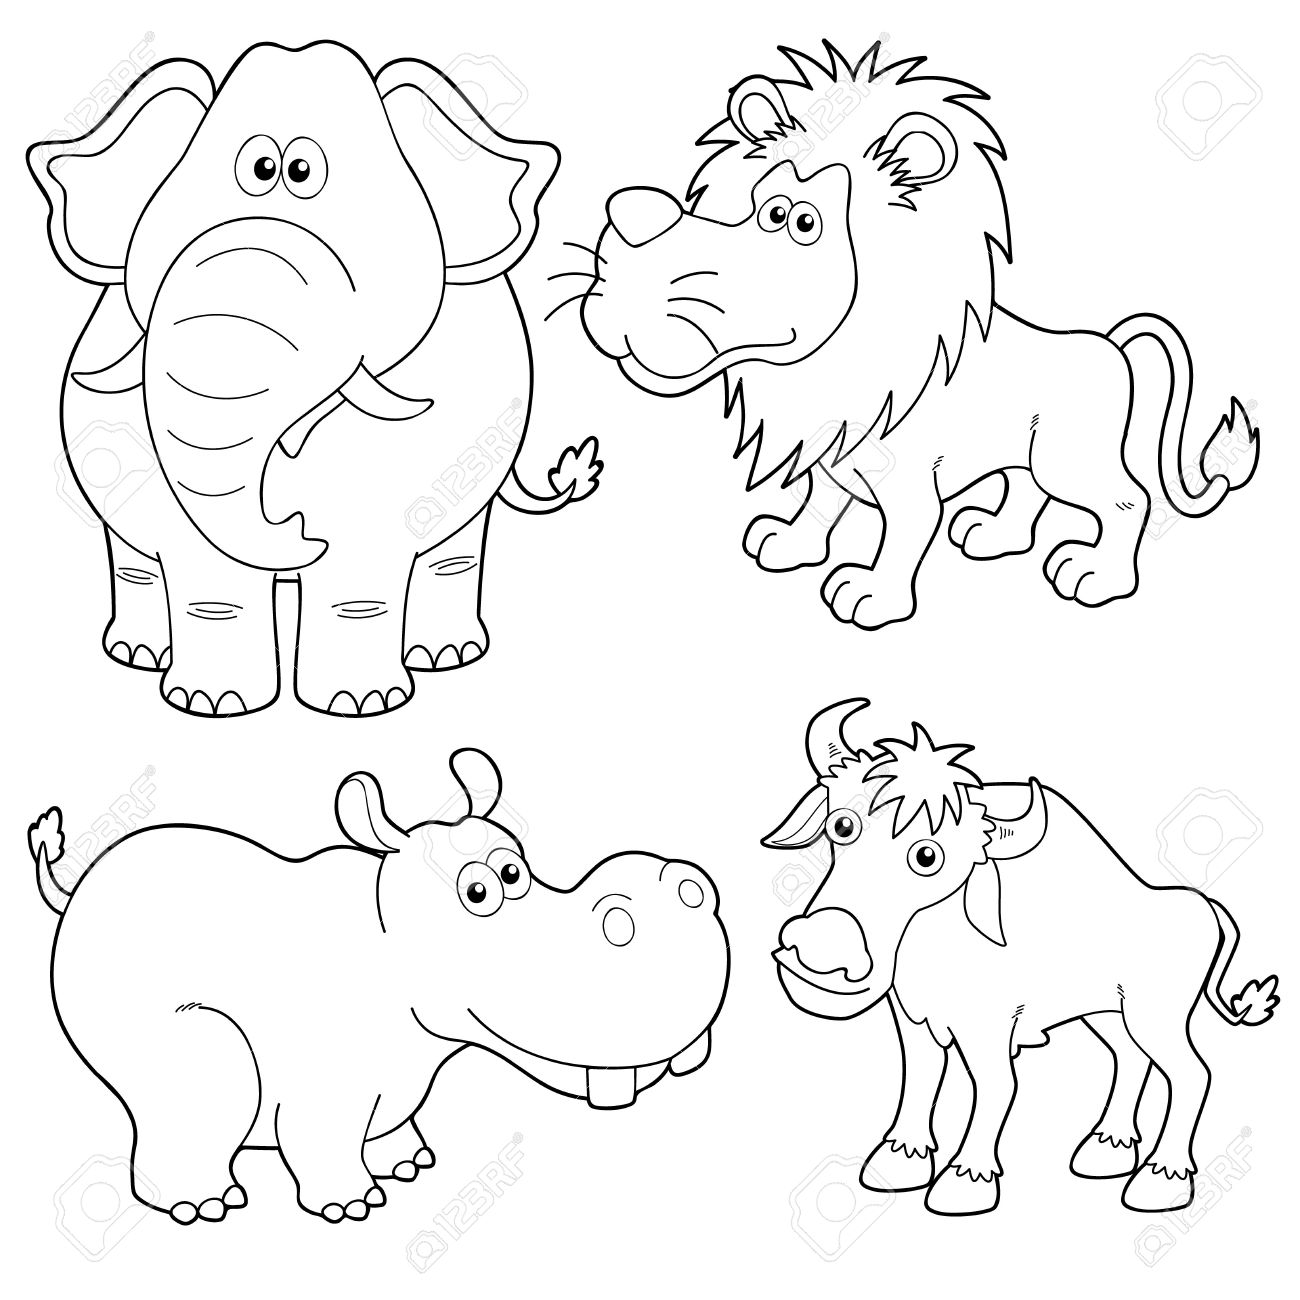 illustration of wild animals cartoons outline royalty free cliparts